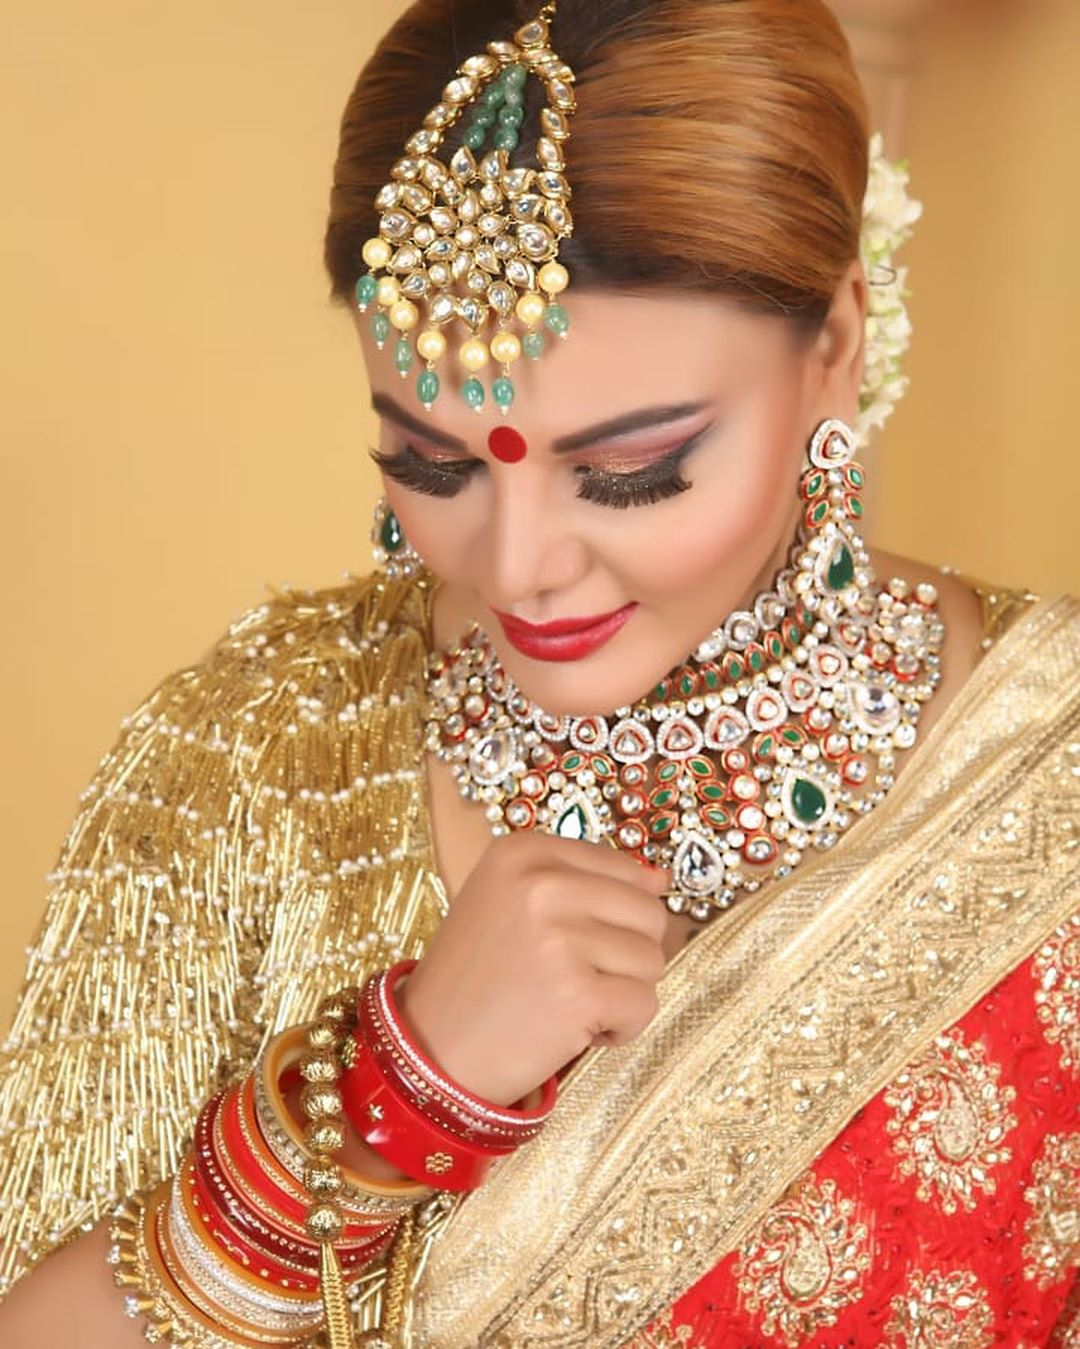 Just Married Pictures Of Rakhi Sawant Are a Dream Come True For